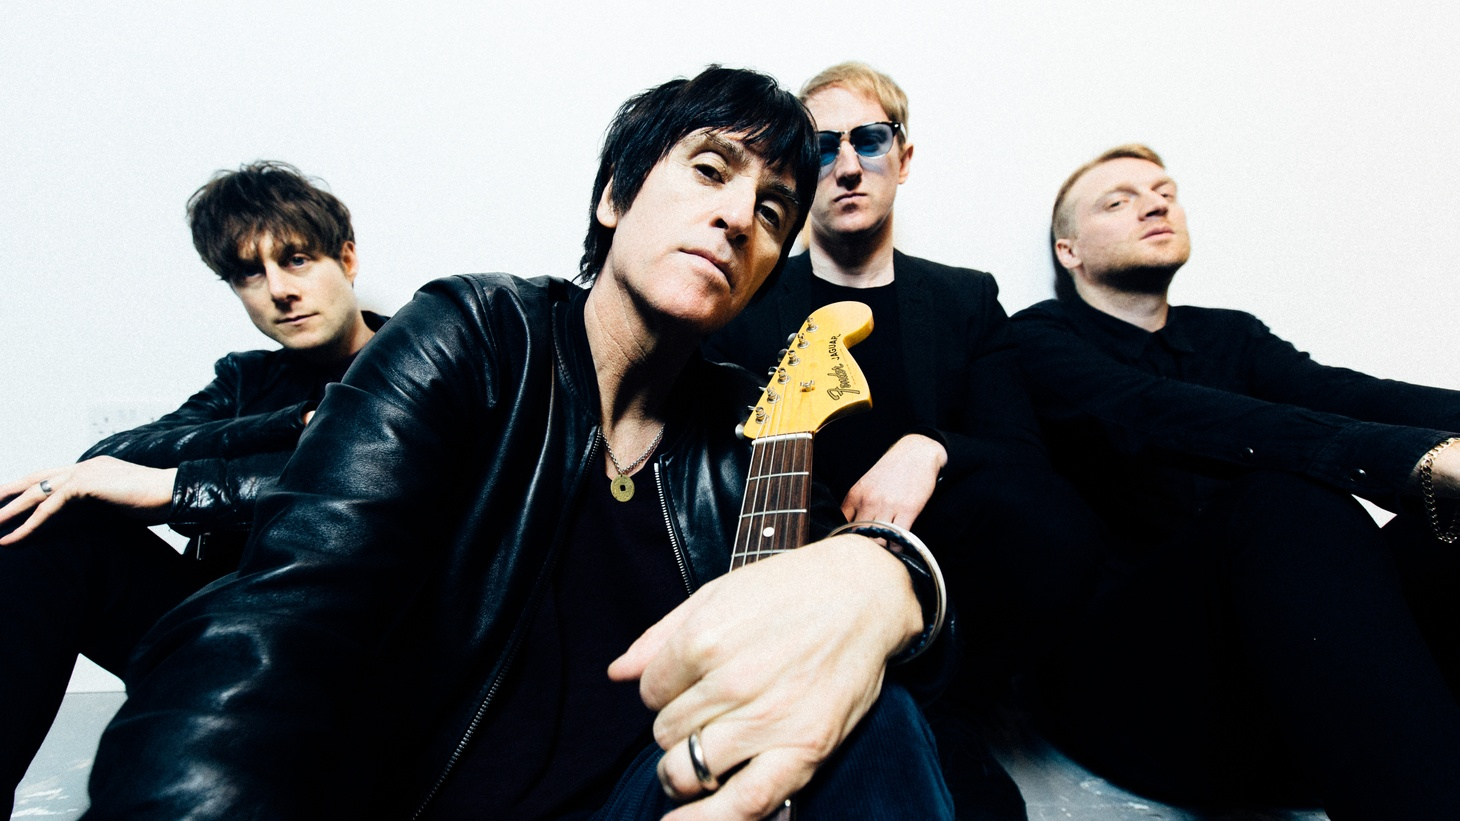 """Johnny Marr, co-founding member of The Smiths, says: """"This is the most complete thing I've ever done. There are no songs I'm not sure about. And for me as a listener, it's made up of entirely the music I like, and have liked."""""""